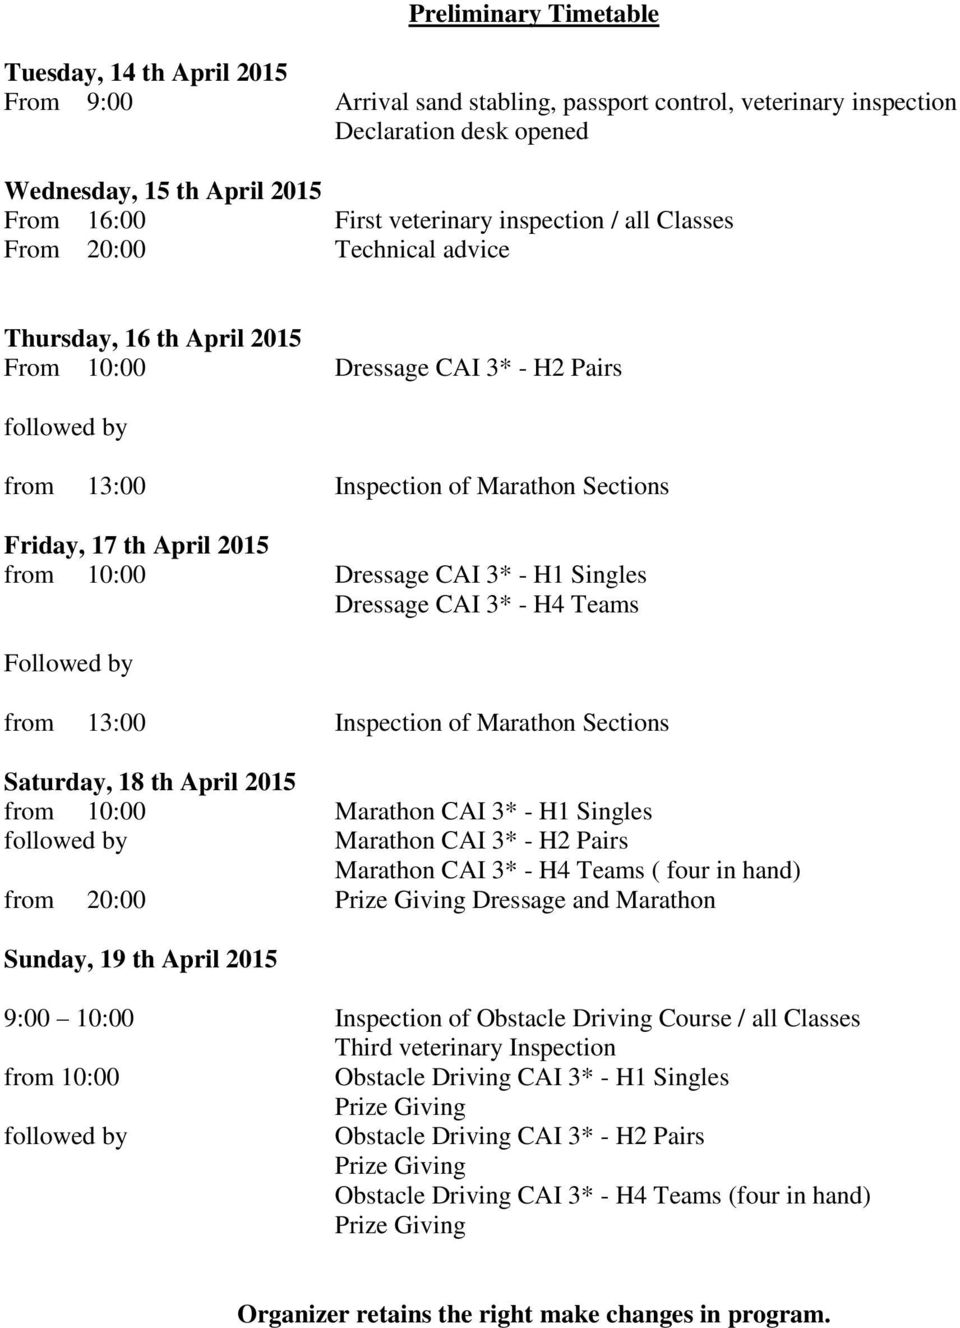 April 2015 from 10:00 Dressage CAI 3* - H1 Singles Dressage CAI 3* - H4 Teams Followed by from 13:00 Inspection of Marathon Sections Saturday, 18 th April 2015 from 10:00 Marathon CAI 3* - H1 Singles